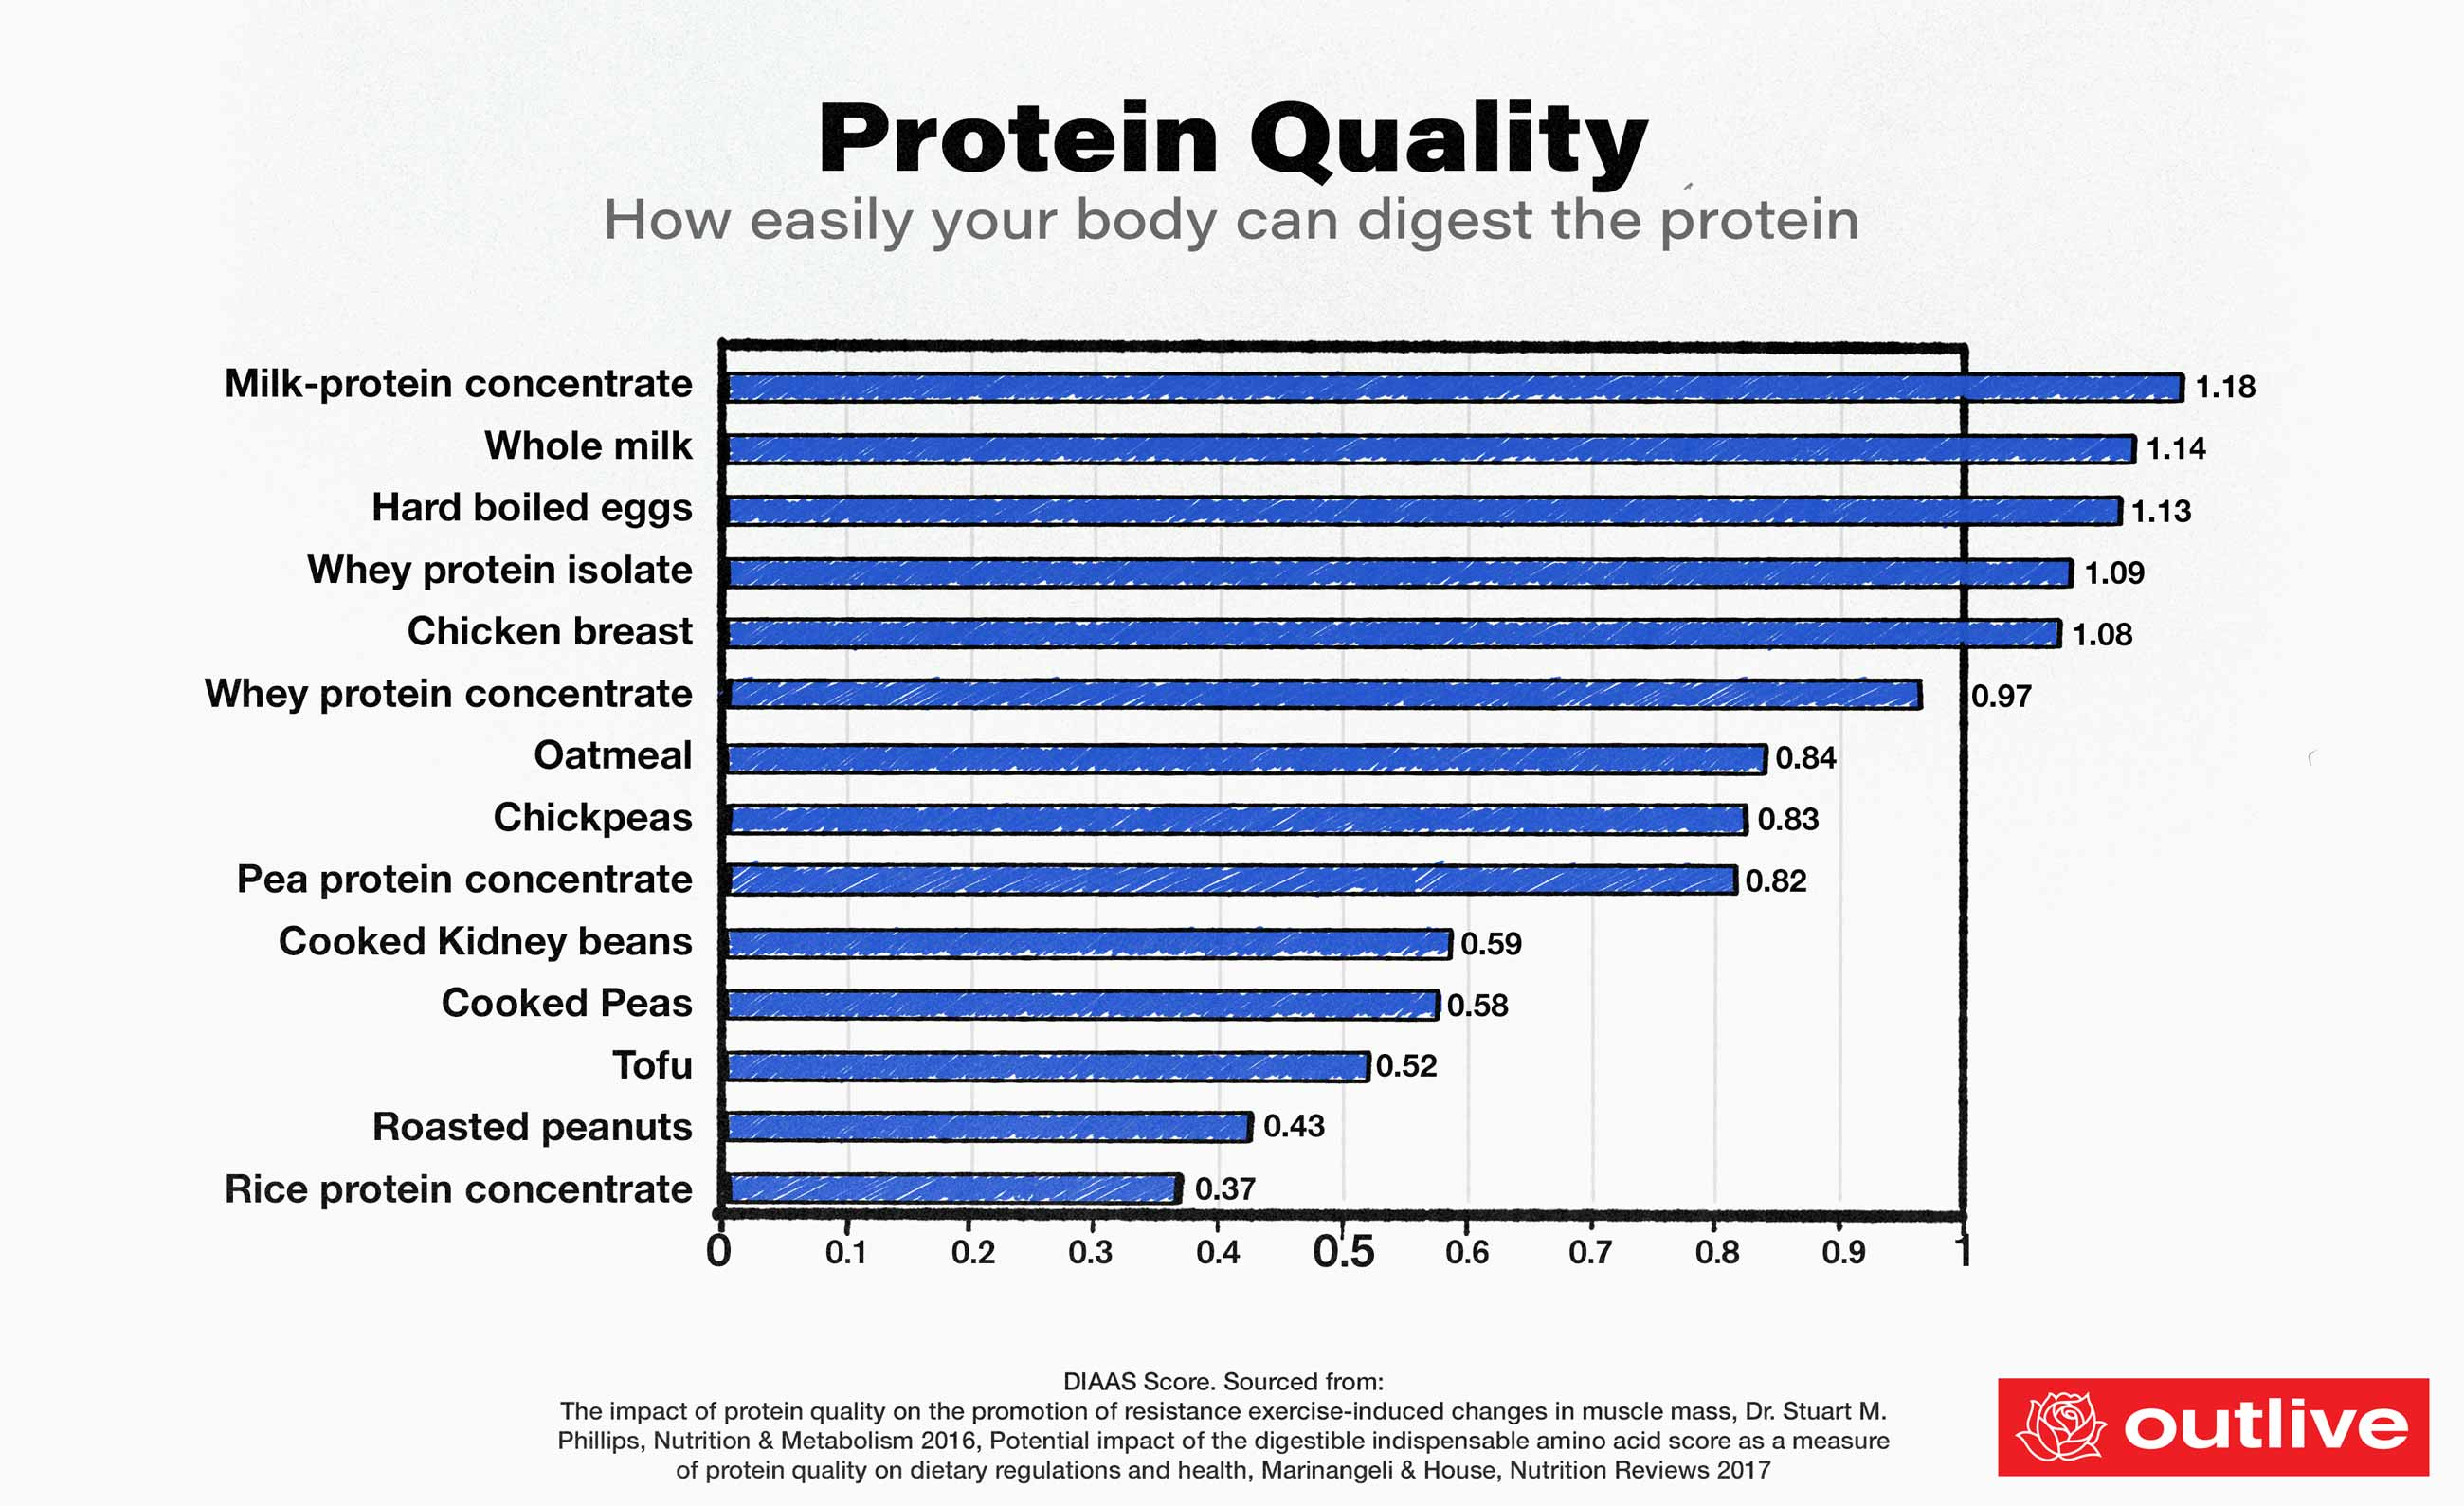 Protein Quality Score, Best Proteins